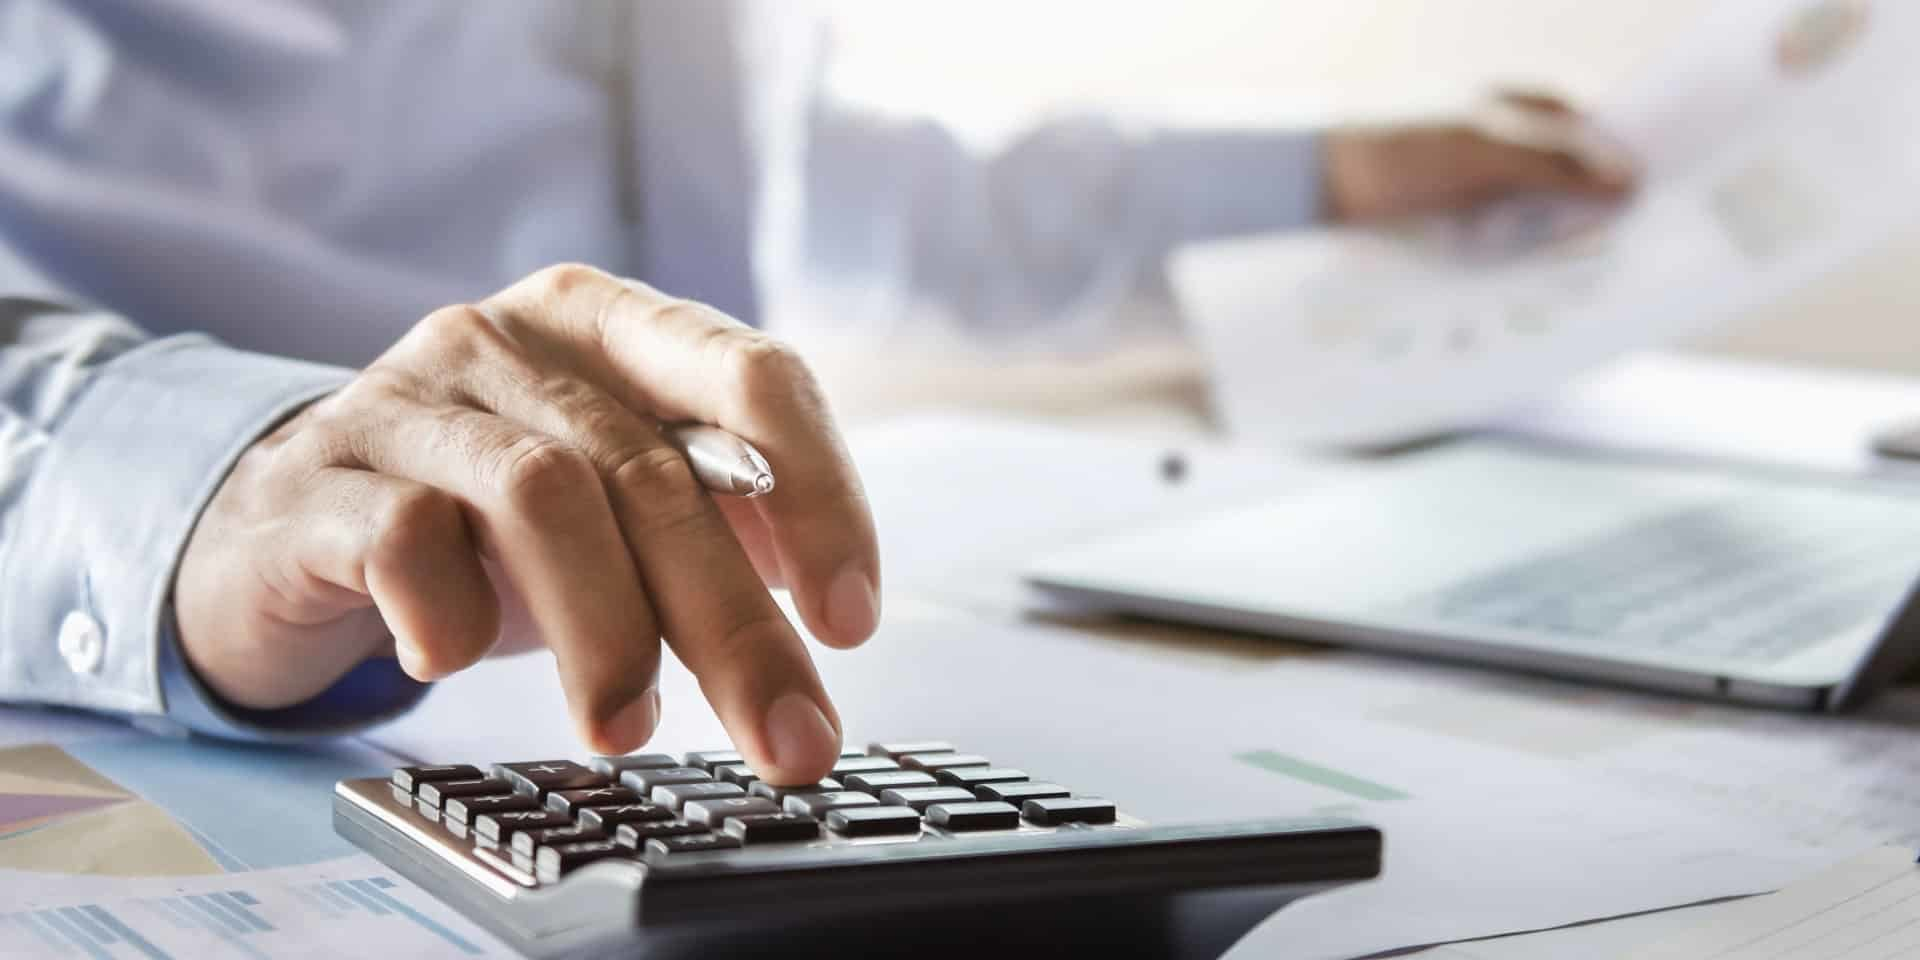 Baker DMM Accounting and Bookkeeping Services